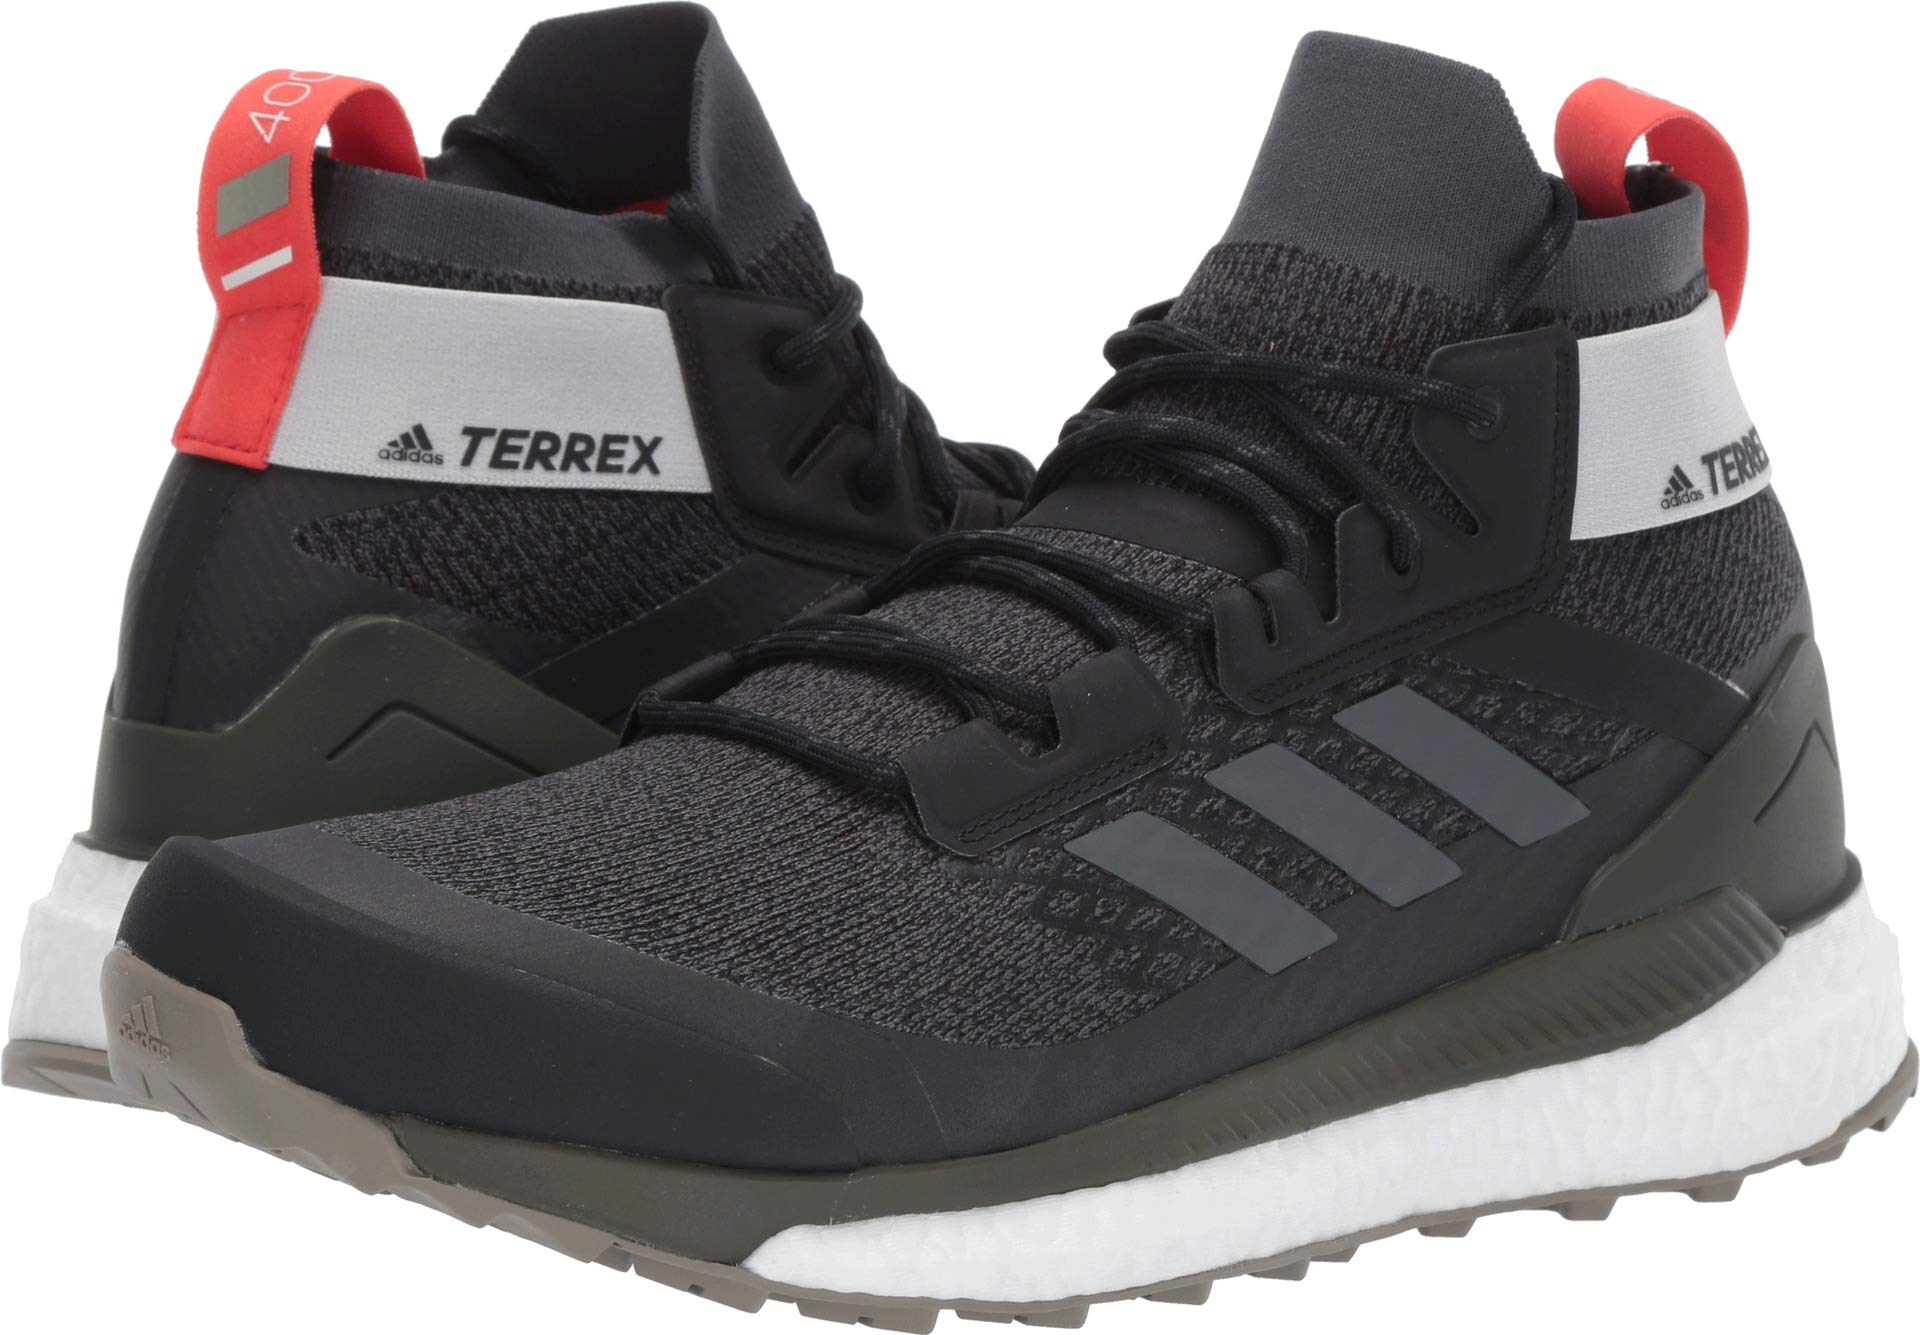 adidas outdoor Terrex Free Hiker Boot - Men's Black/Grey Six/Night Cargo, 7.5